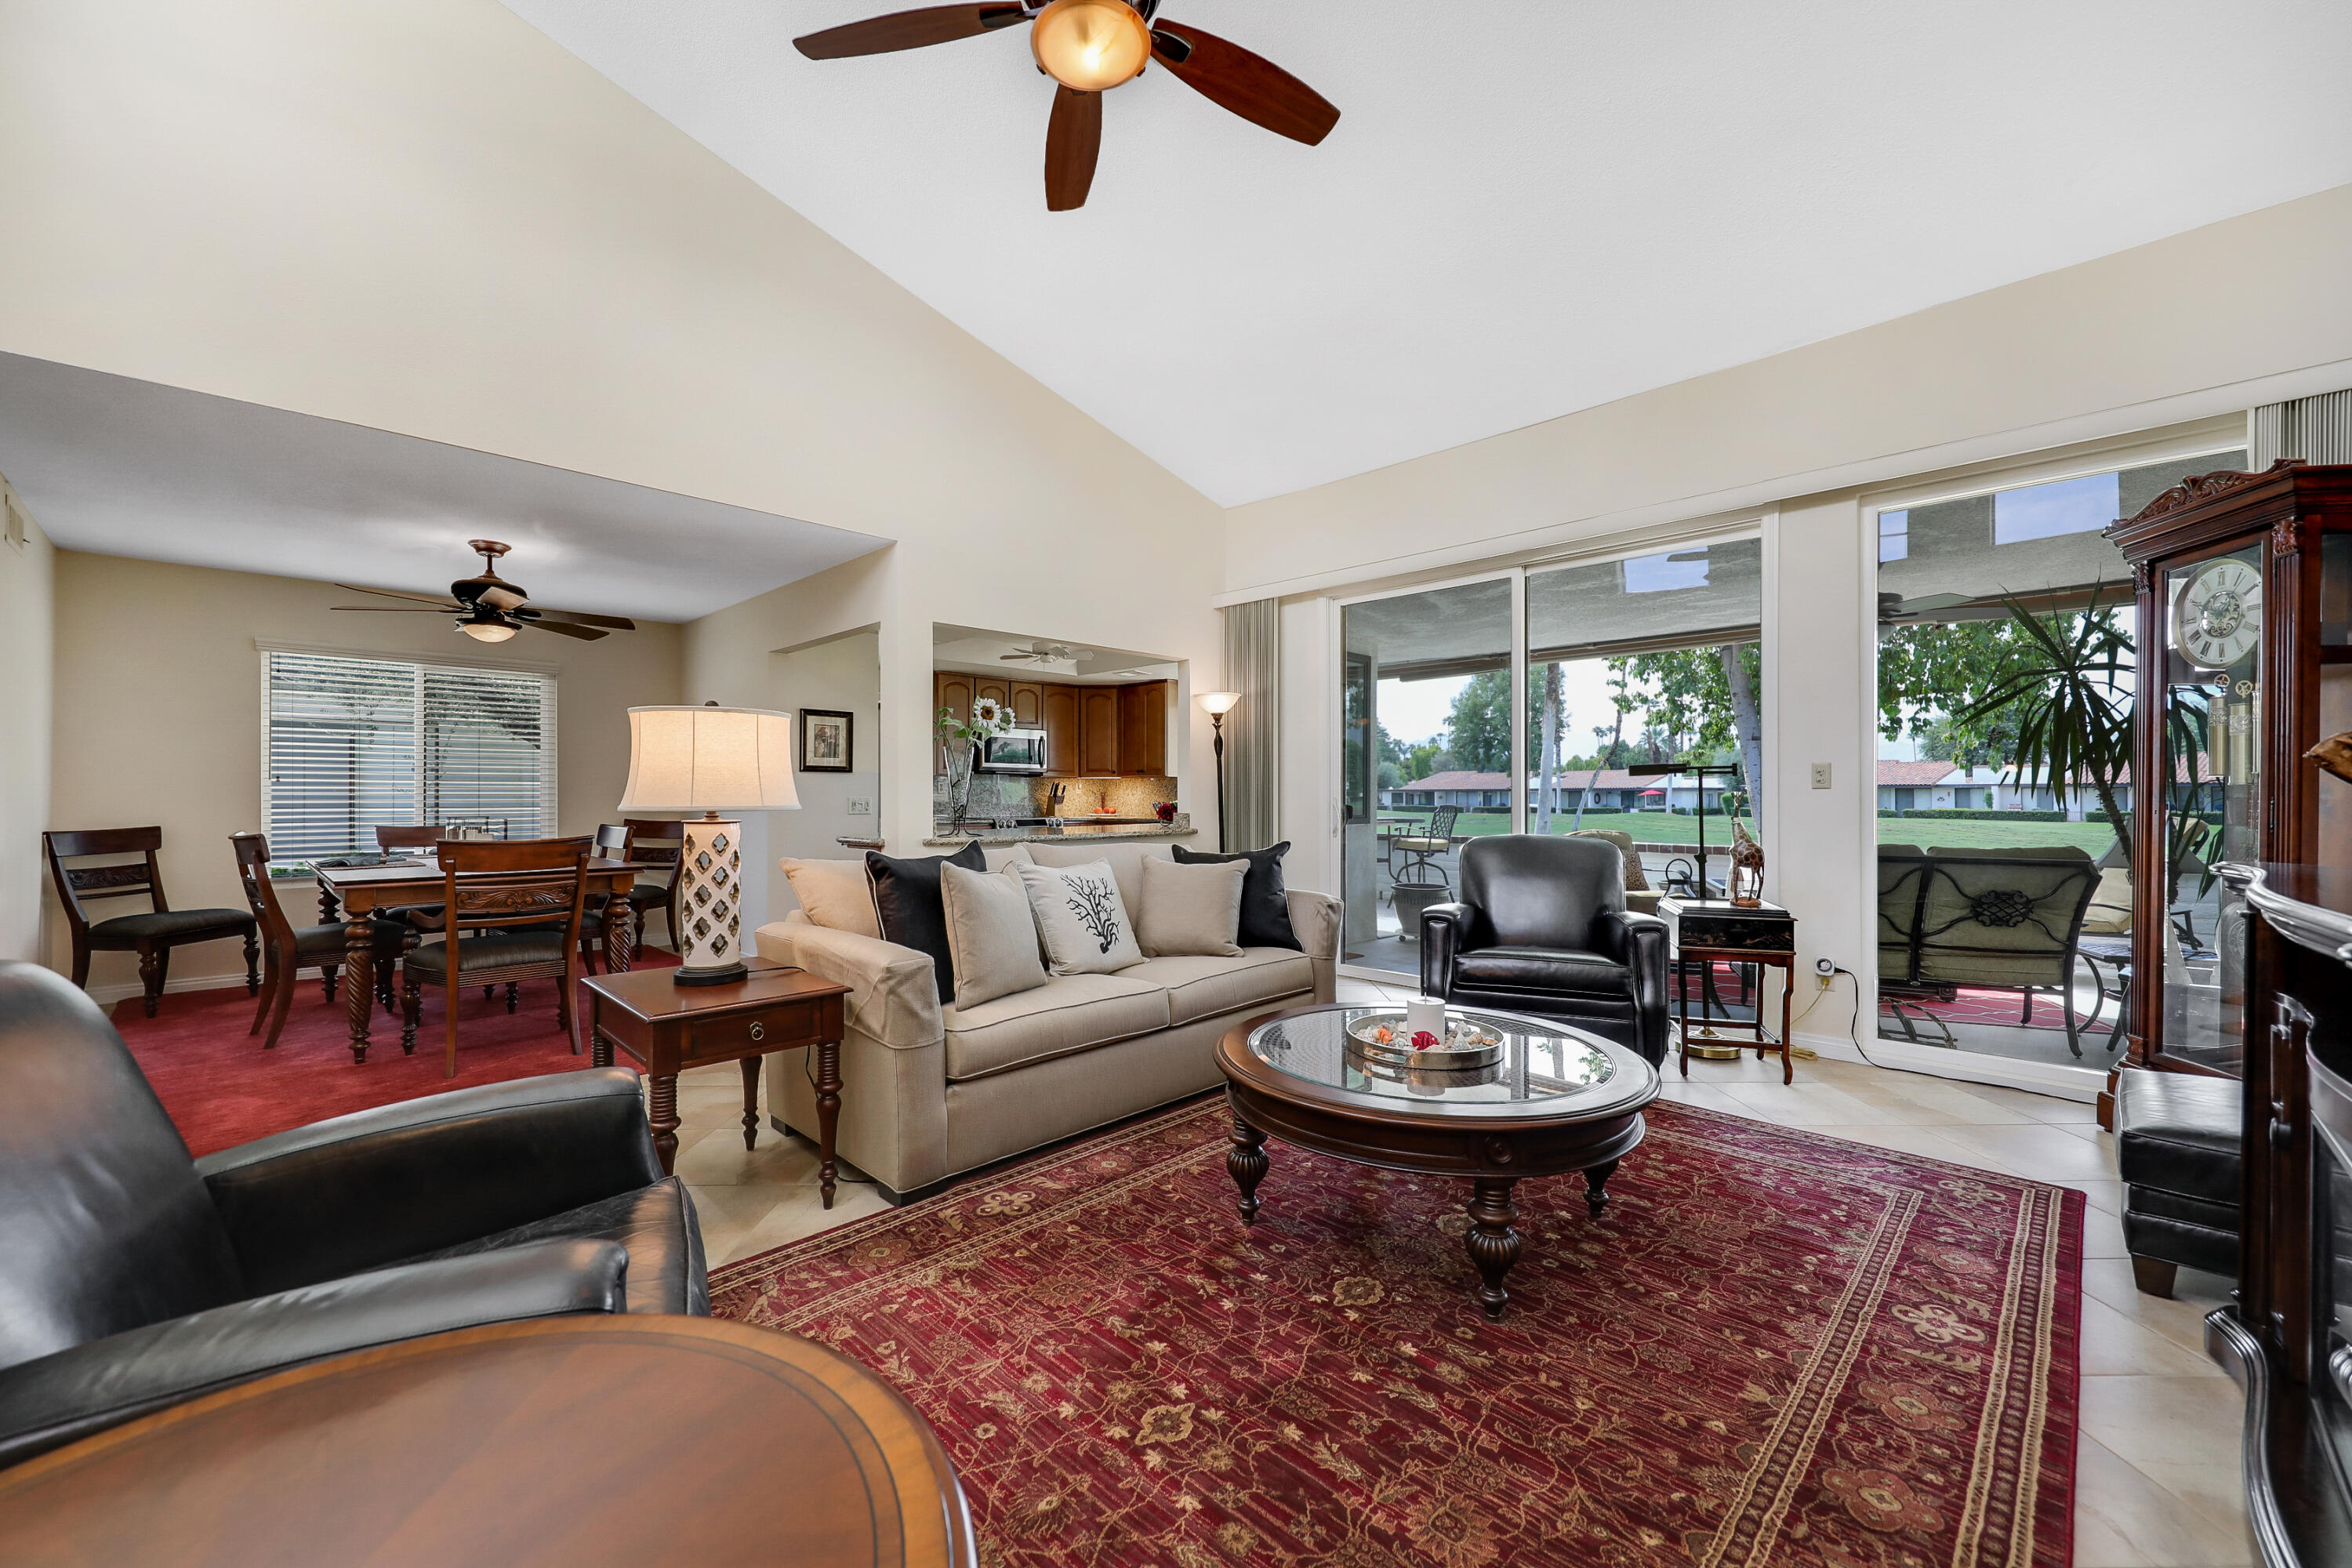 Back on the Market and we will be taking calls for showings over the entire weekend of 10/08/21 to 10/10/21 Please call listing agent for appointment. This beautifully remodeled 30 plan is a 3 bedroom 2 bath home facing South and looking across #3 and  down the fairway of the # 2 hole of the North  golf course to the Mountains in the background. This home is only a few steps from the closest Community pool as you walk out from the extended patio. The interior has been redone to include custom cabinets, granite counter tops, and double pane windows and sliders throughout. The two car garage has extra storage including shelving  and an overhead area. In addition this home has the added plus value of Solar panels on the roof that are paid for and reduce the electric bill to the absolute minimum including rebates. solar tubes and skylights add to the light and airy feel of the home as do the soft colors. This one is very special and shows the care and attention to detail by the Home owners. Rancho Las Palmas Country Club has a 27 hole golf course available to Homeowners as well as tennis and pickle ball courts, a fitness center and dining facilities in the Club house. You can also walk to the front gate, the Omni Hotel and ''The River'' complex just out the gate with all it's movie theaters, shops and restaurants.